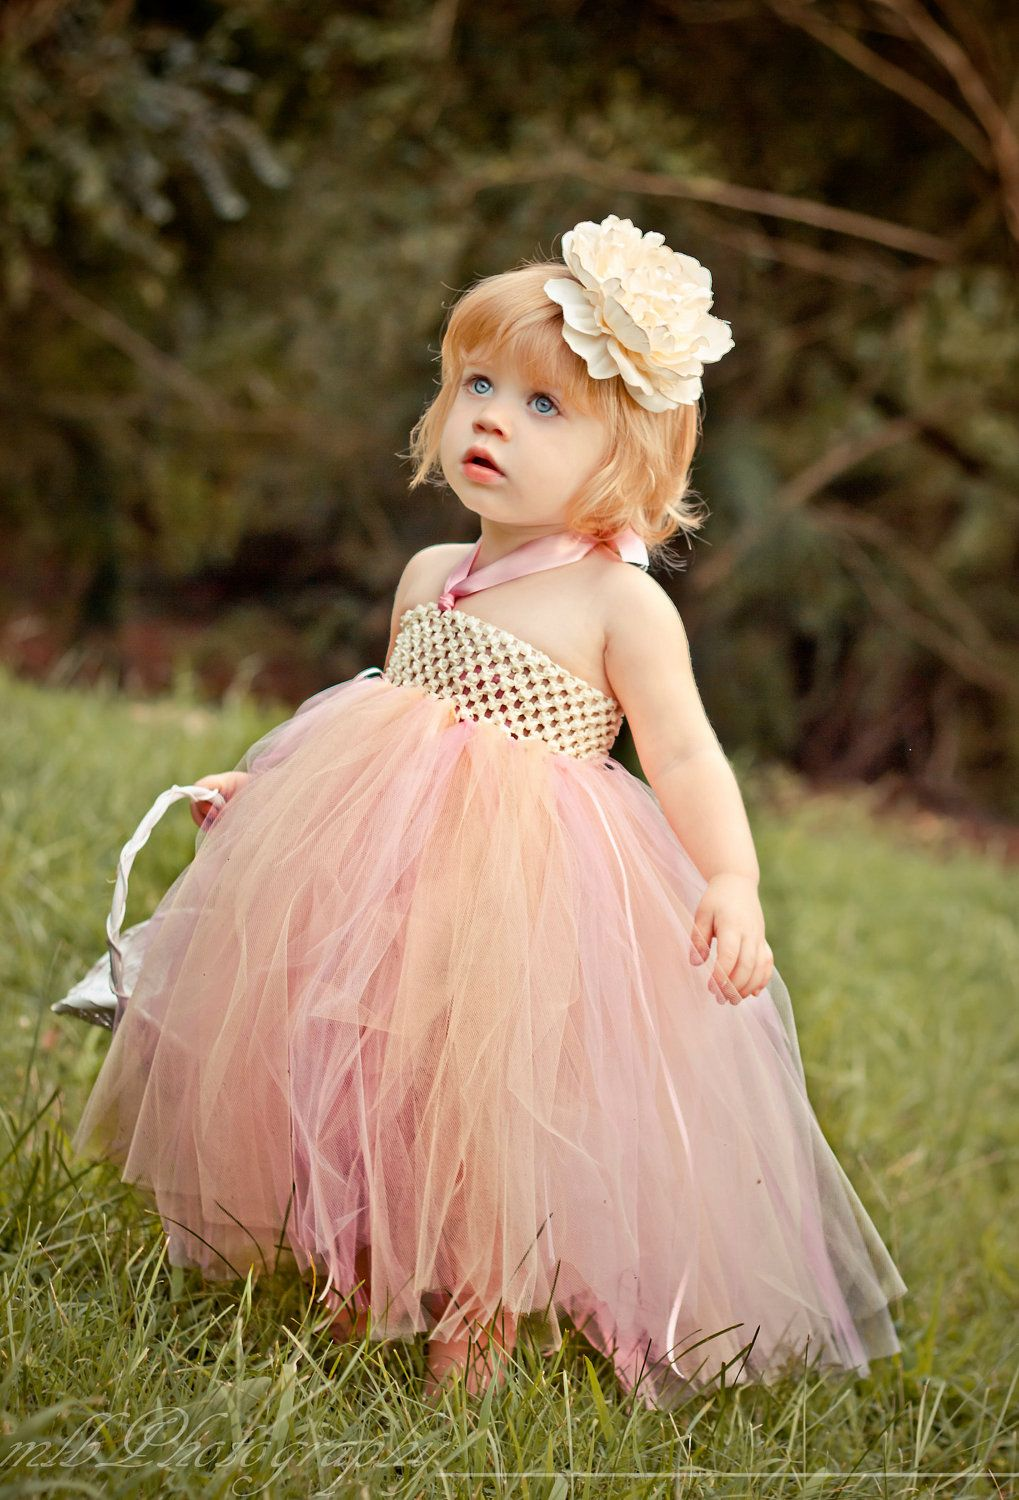 Flower Girl Tutu Dress-Flower Girl Dress-Toddler Tutu Dress-Baby ...